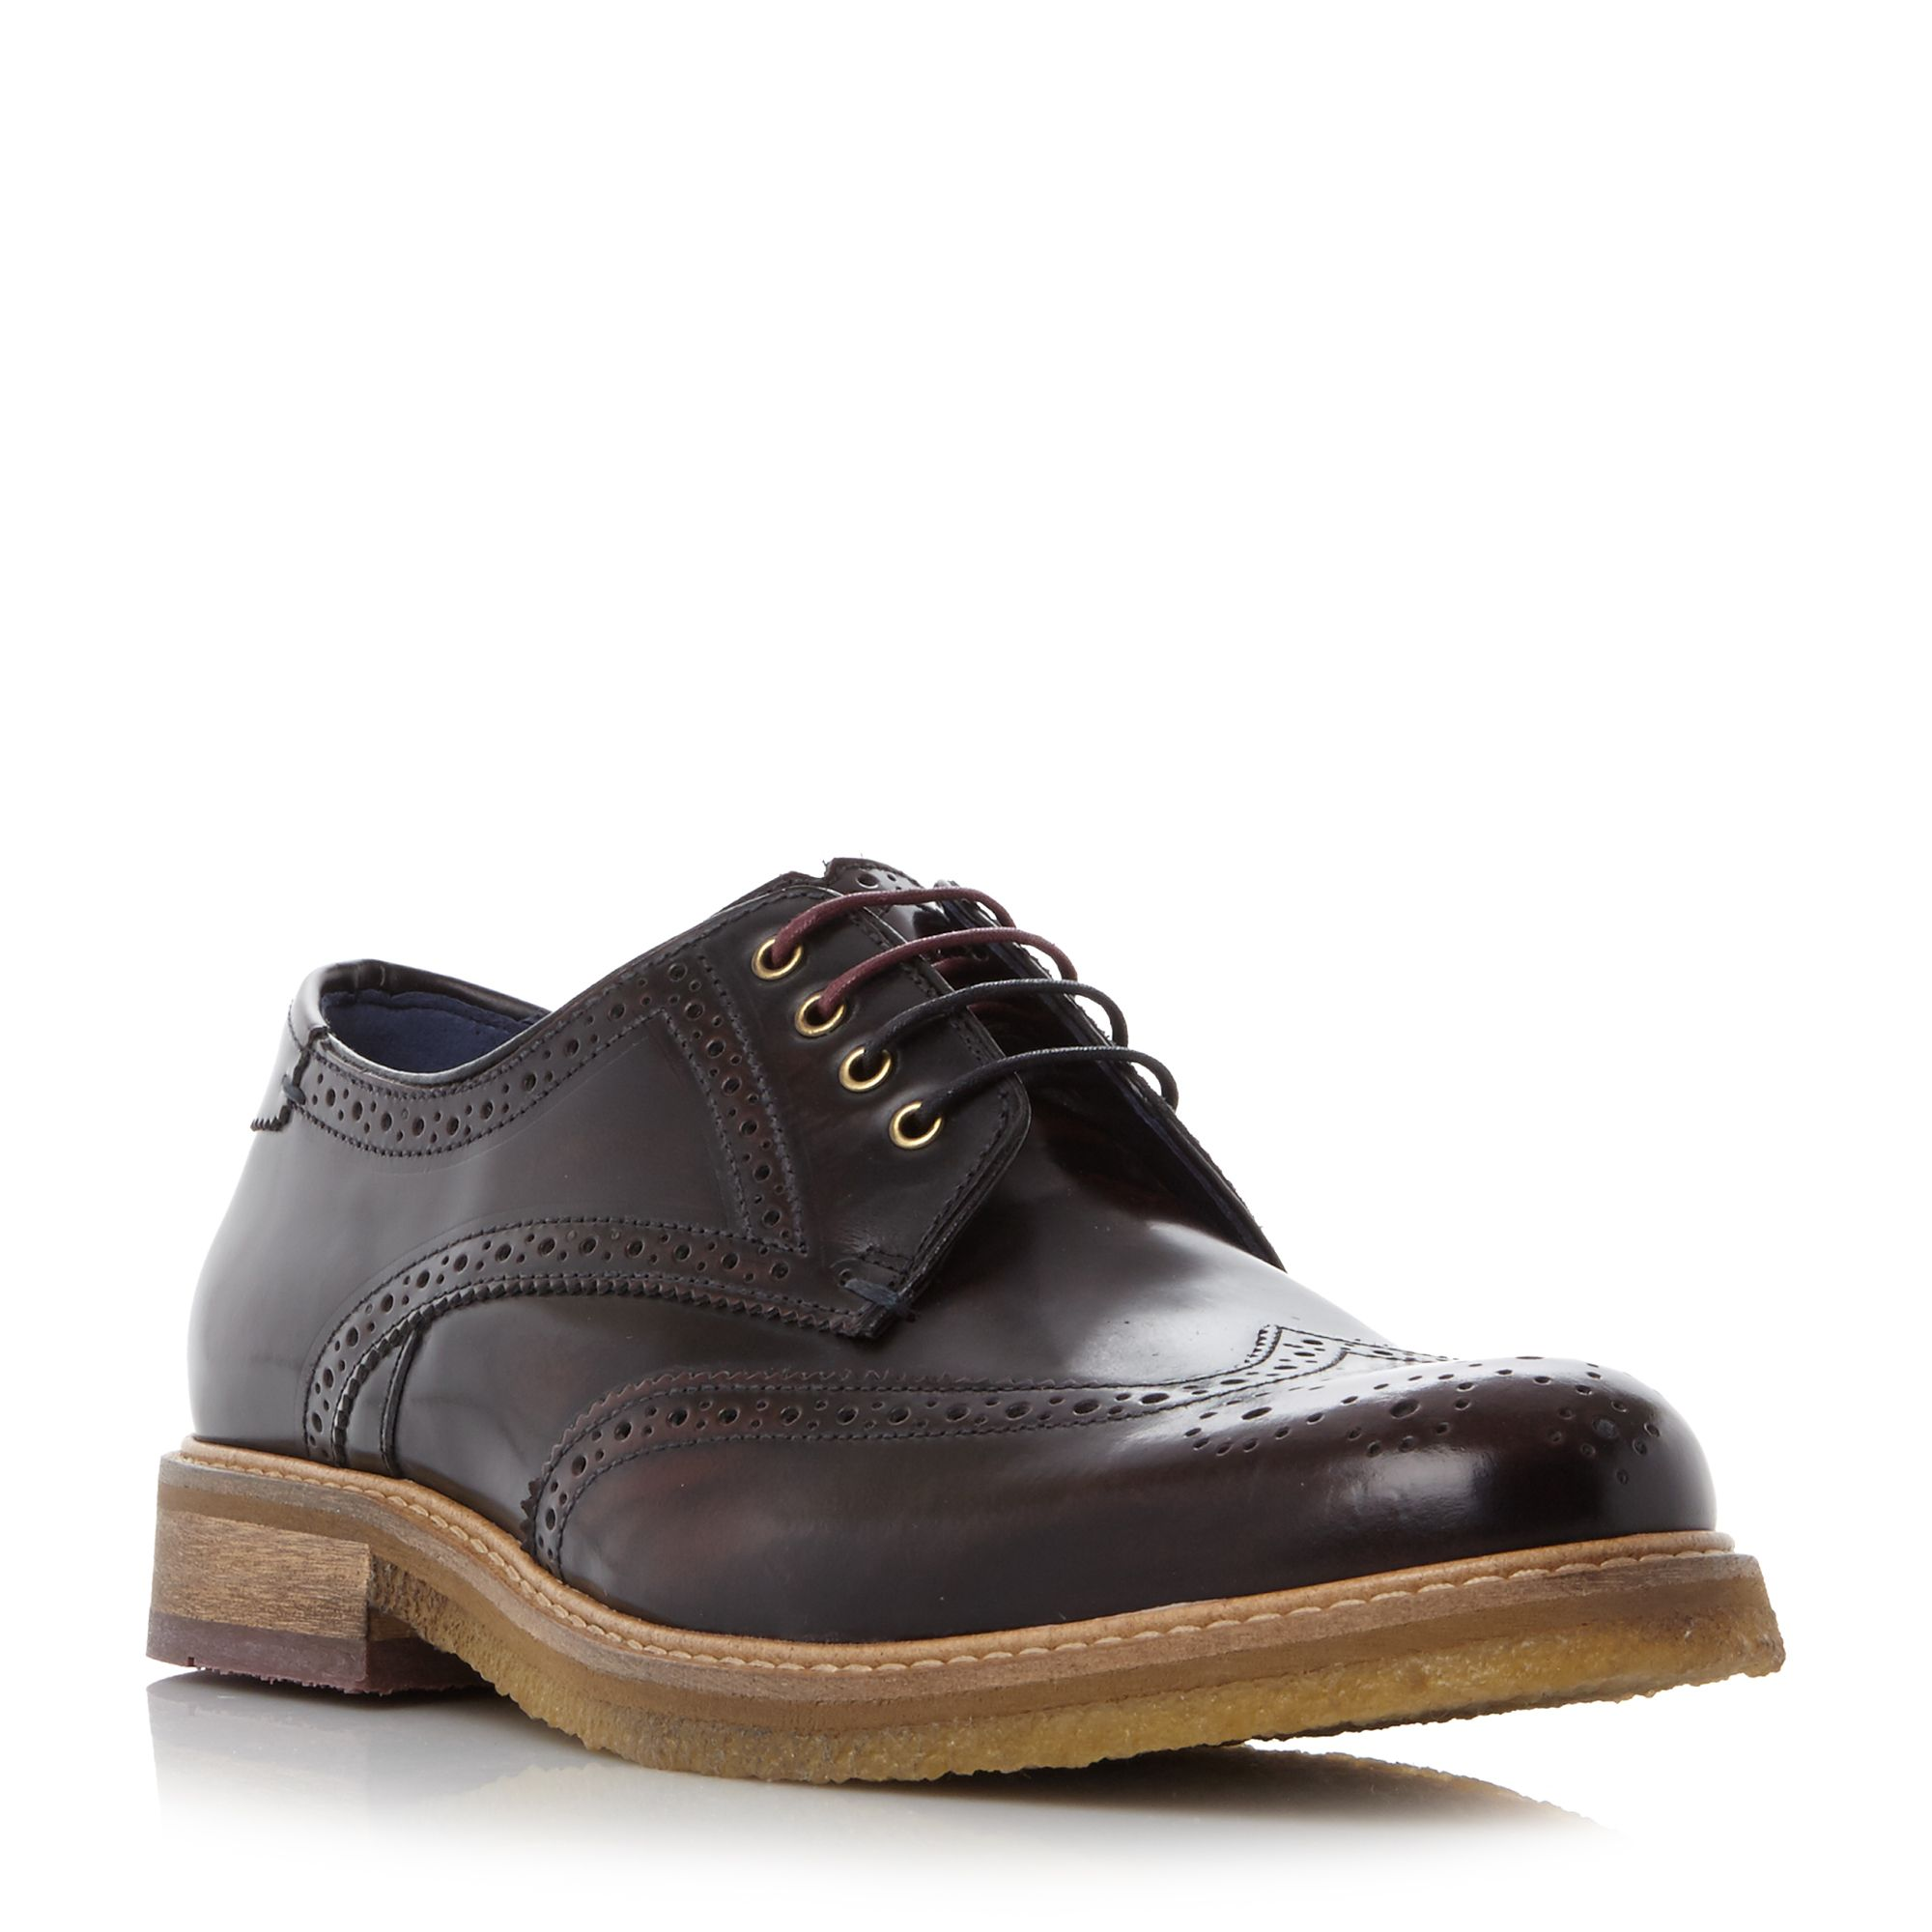 Ted Baker Prycce Wingtip Gibson Brogue Shoes Bordeaux